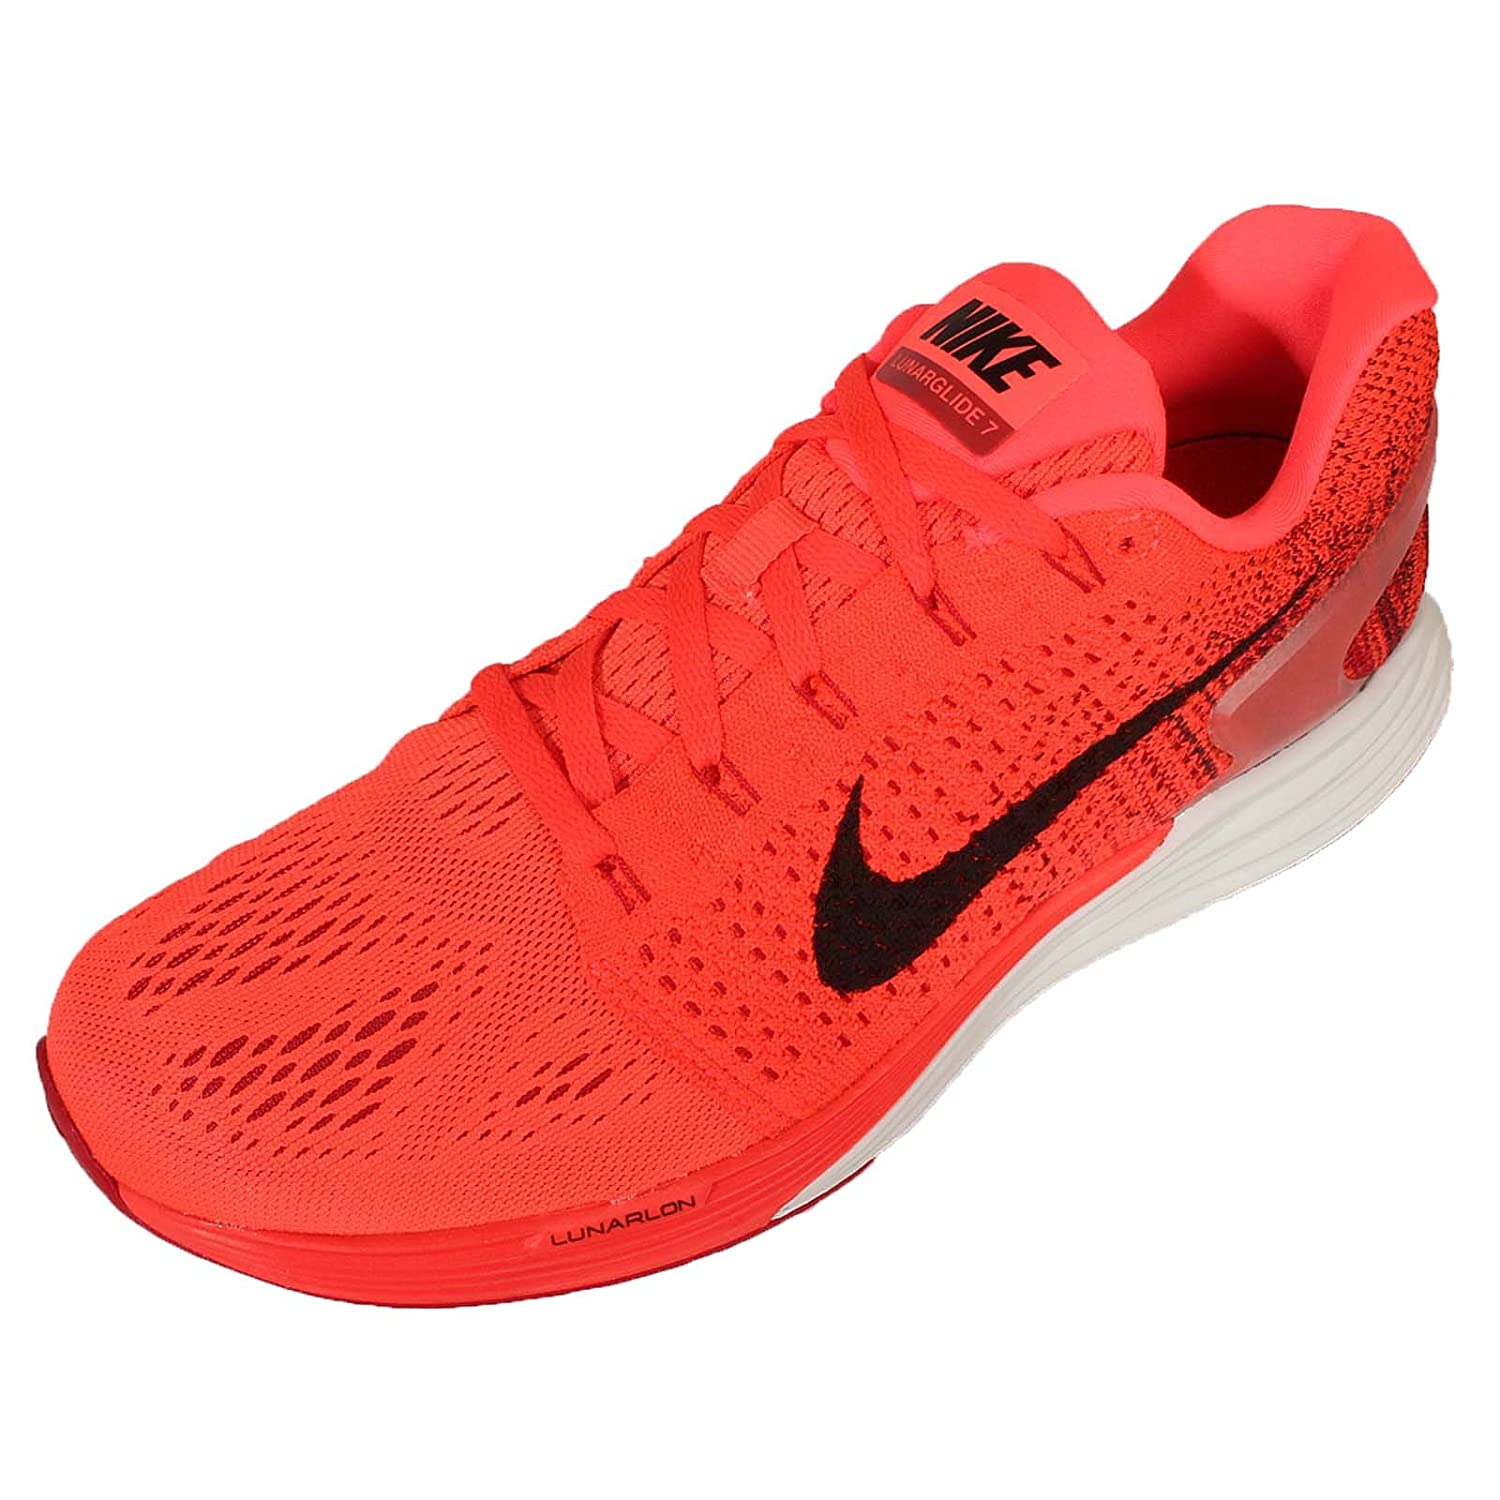 Nike Men\u0027s Lunarglide 7 Running Shoes: Buy Online at Low Prices in India -  Amazon.in